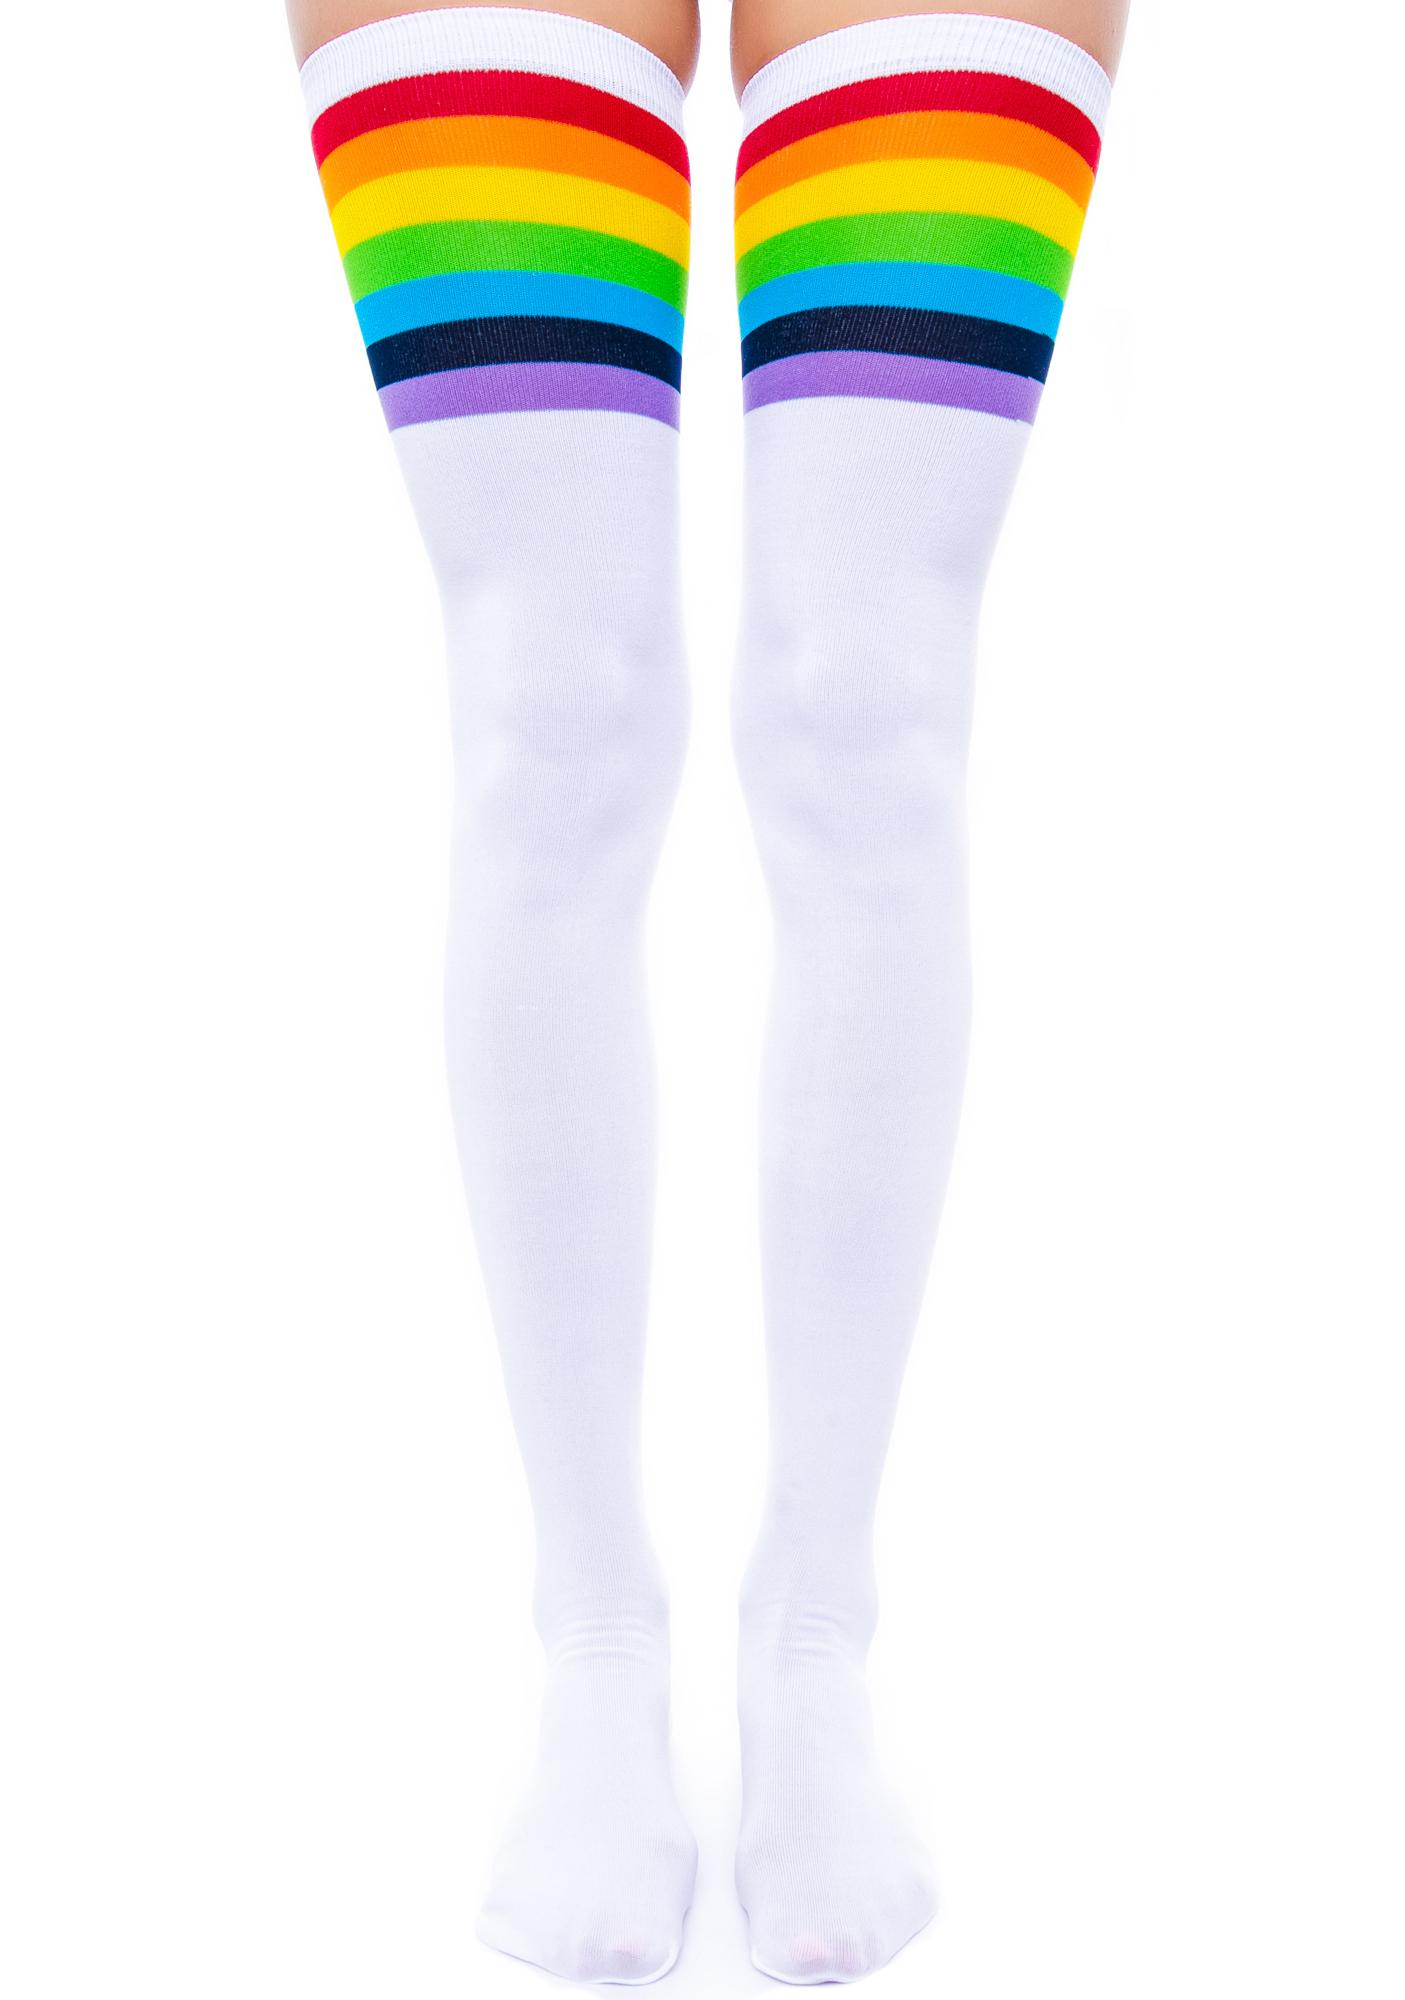 Over the Rainbow Knee Socks